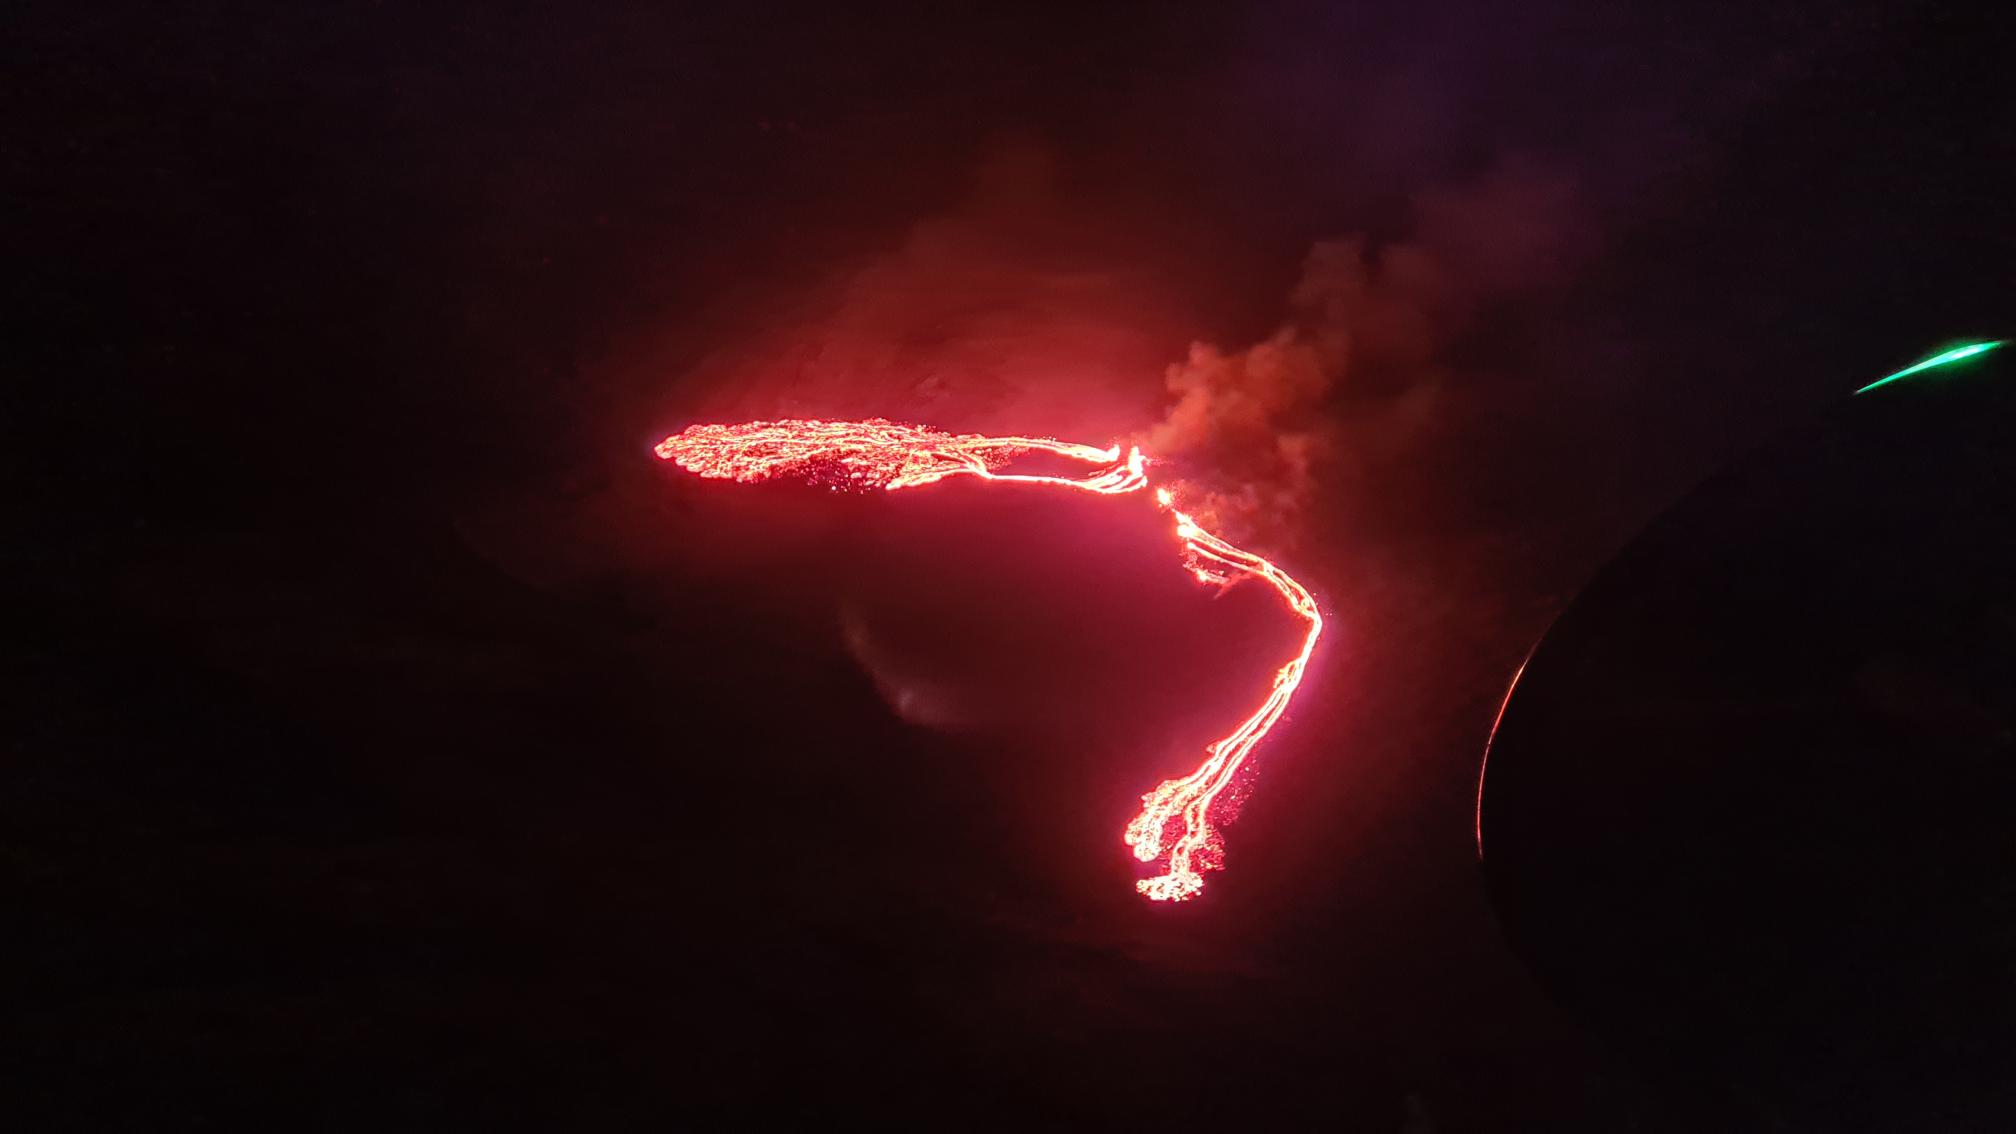 First view of the new eruption in Iceland (image: Coast Guard helicopter, via IMO / twitter).